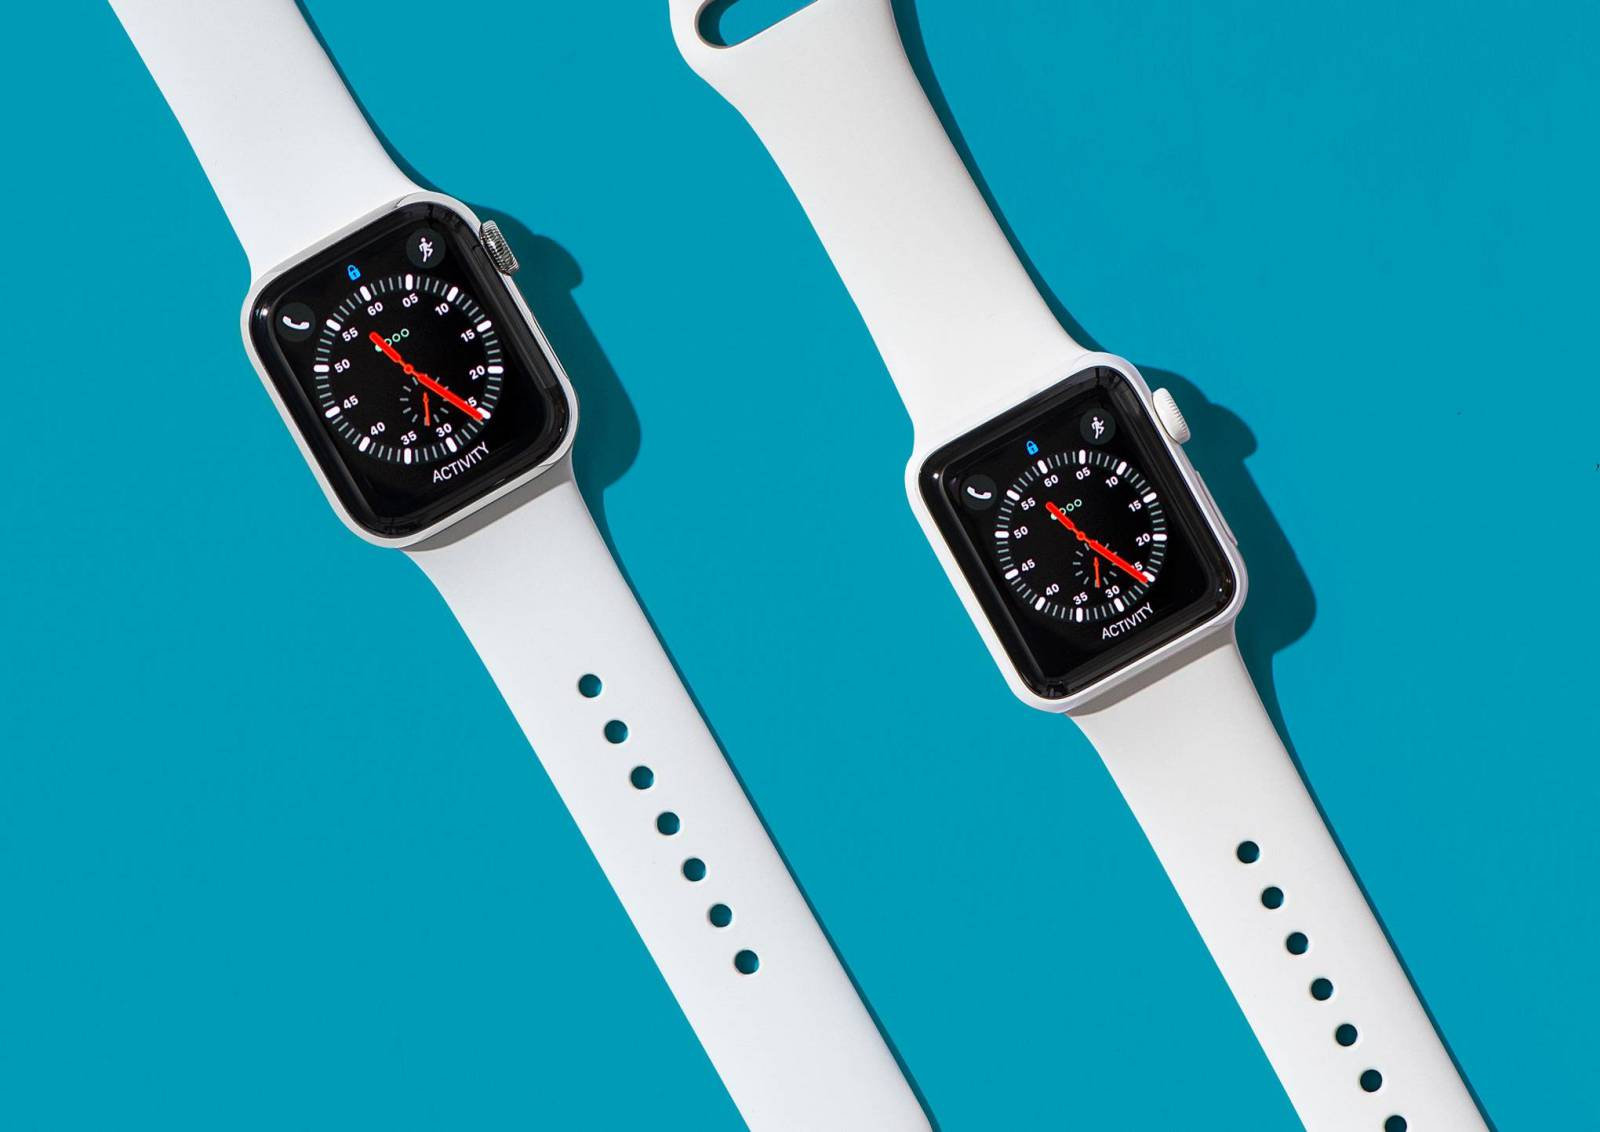 apple watch salvat femeie accident rutier